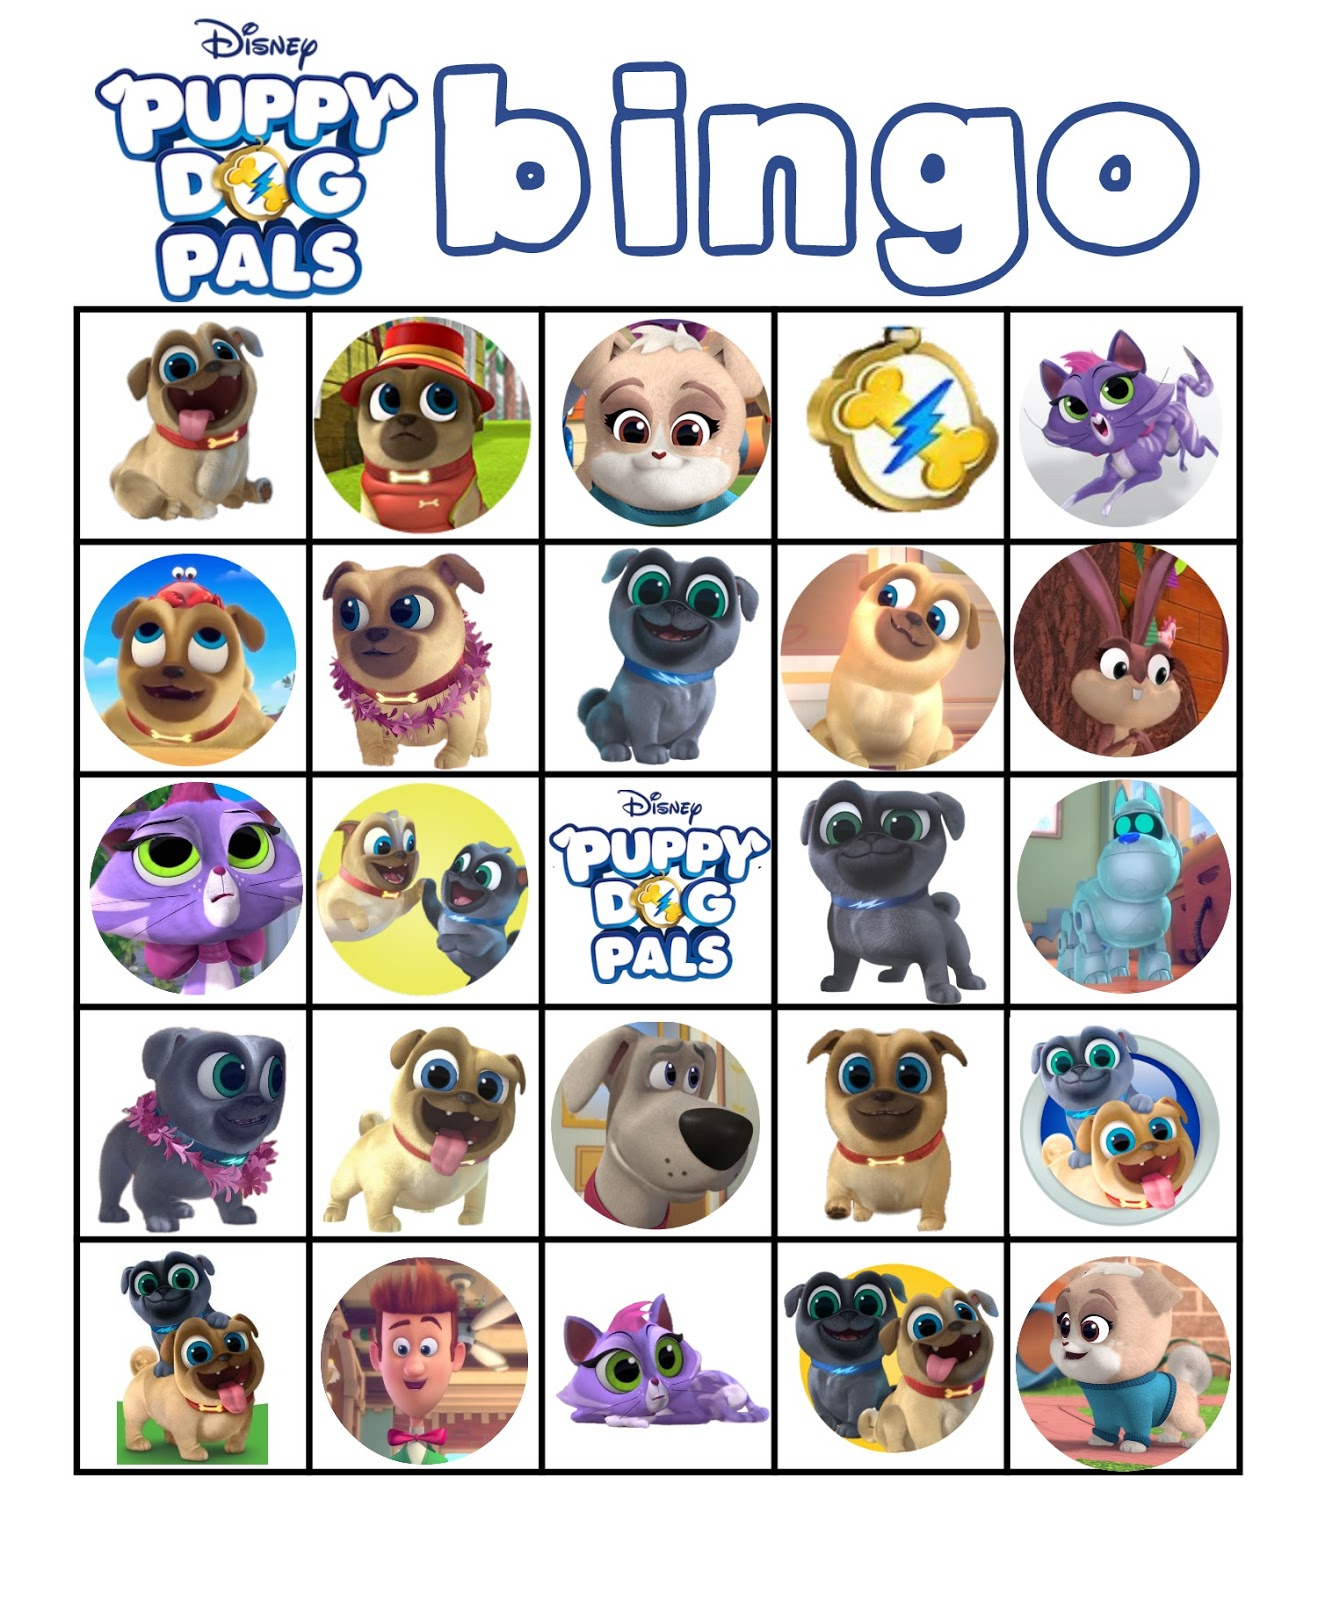 Musings Of An Average Mom: Free Printable Puppy Dog Pals Bingo